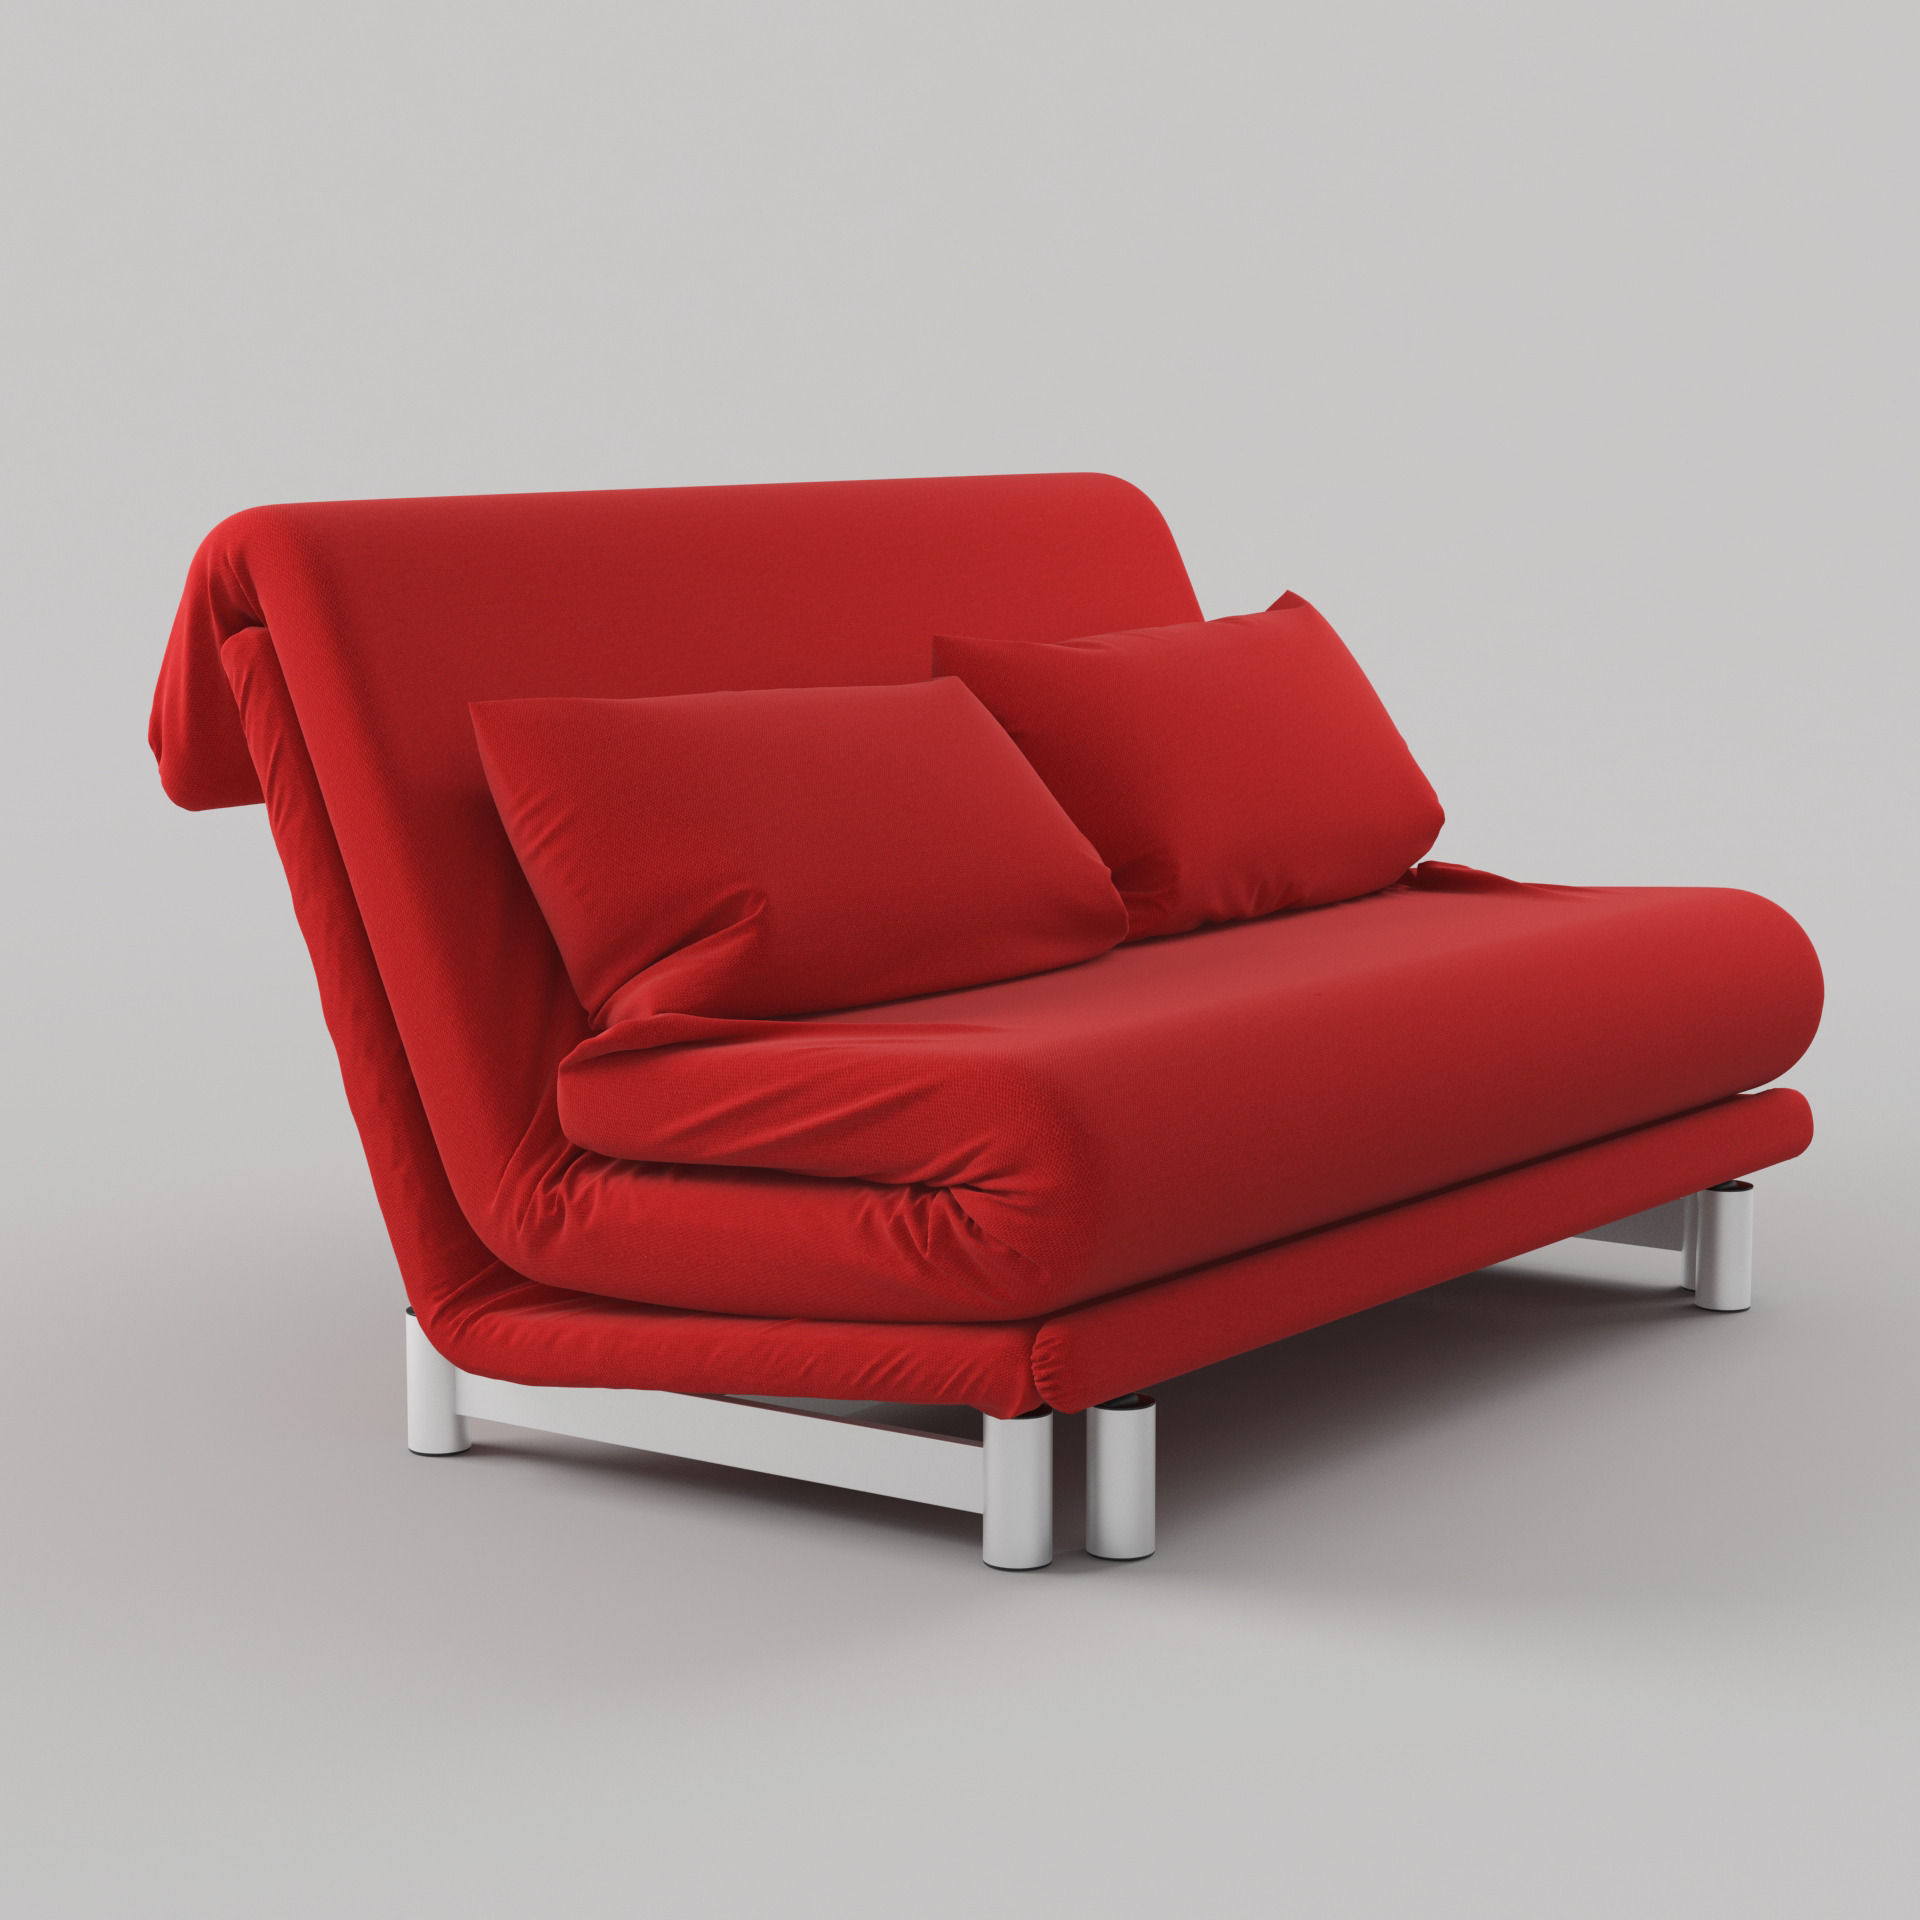 Modern sofa bed by ligne roset 3d model max obj mtl fbx unitypackage prefab 3